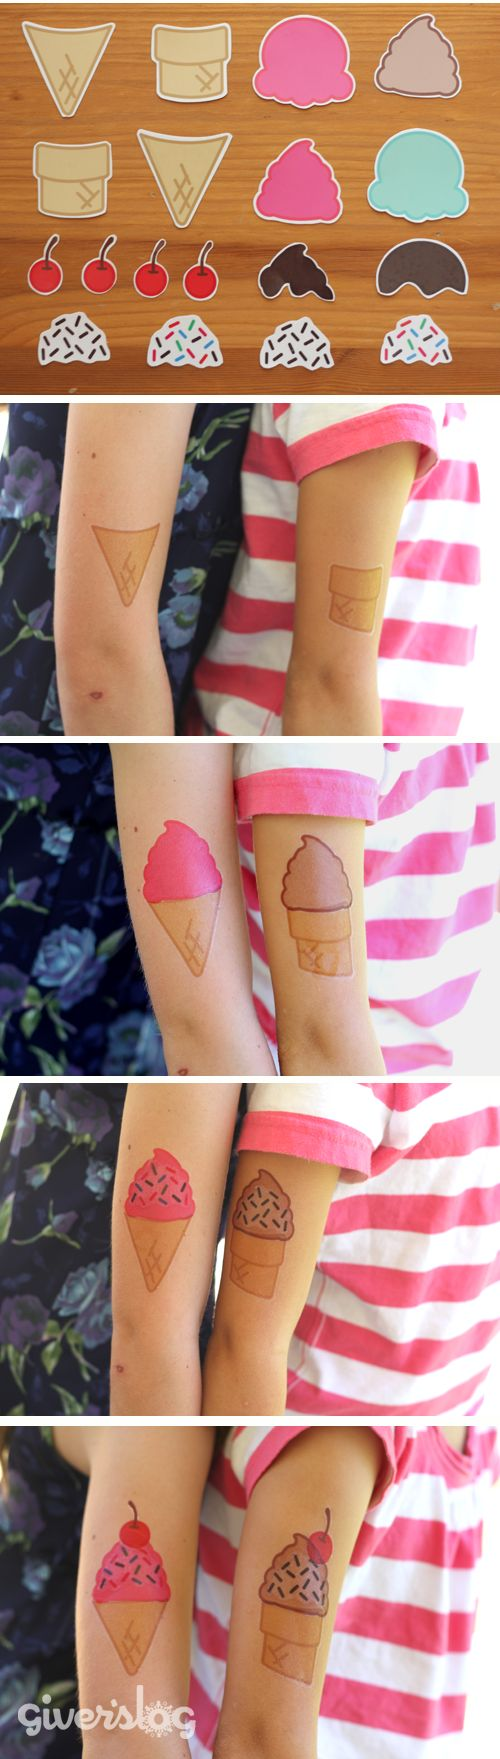 Make Your Own Ice Cream Tattoos...awesome